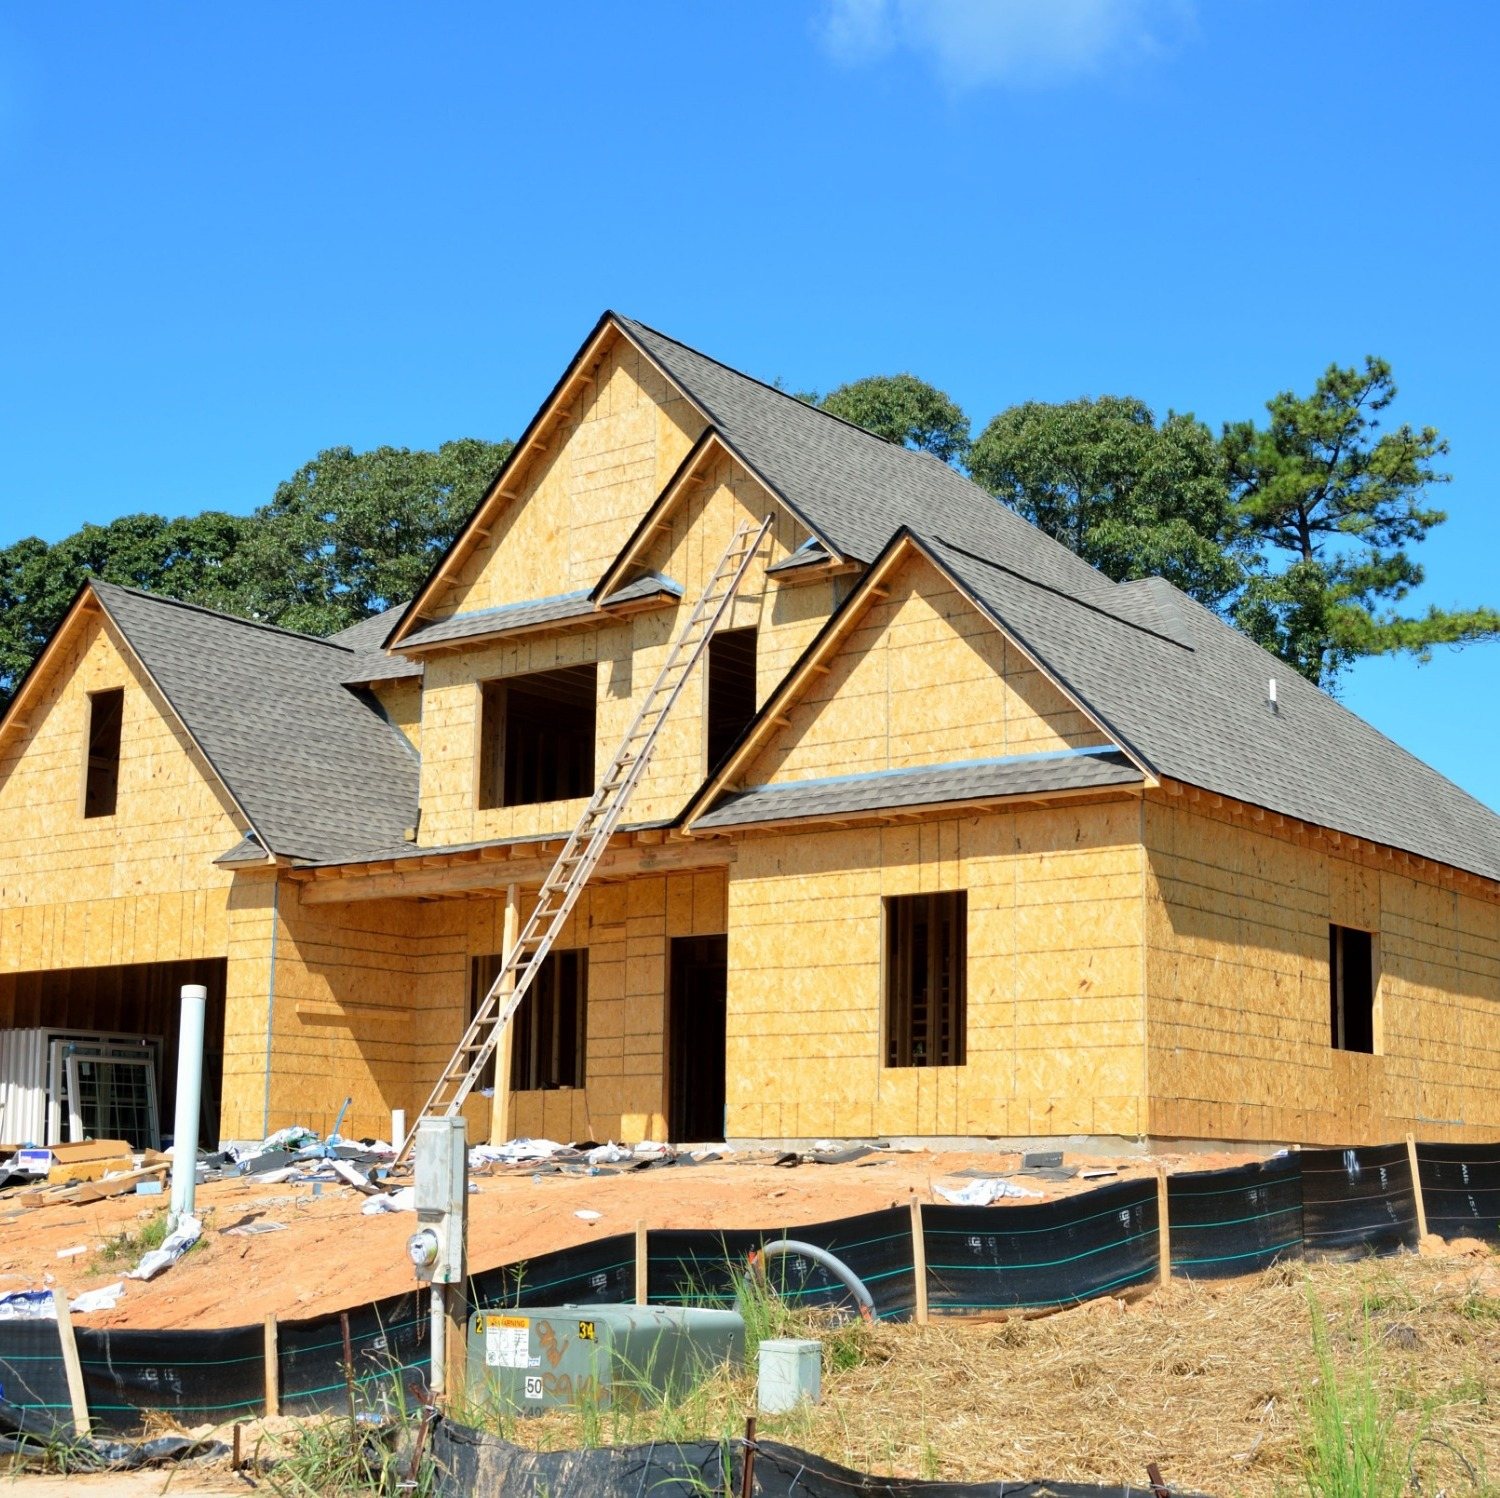 Craven Roofing & Construction image 3